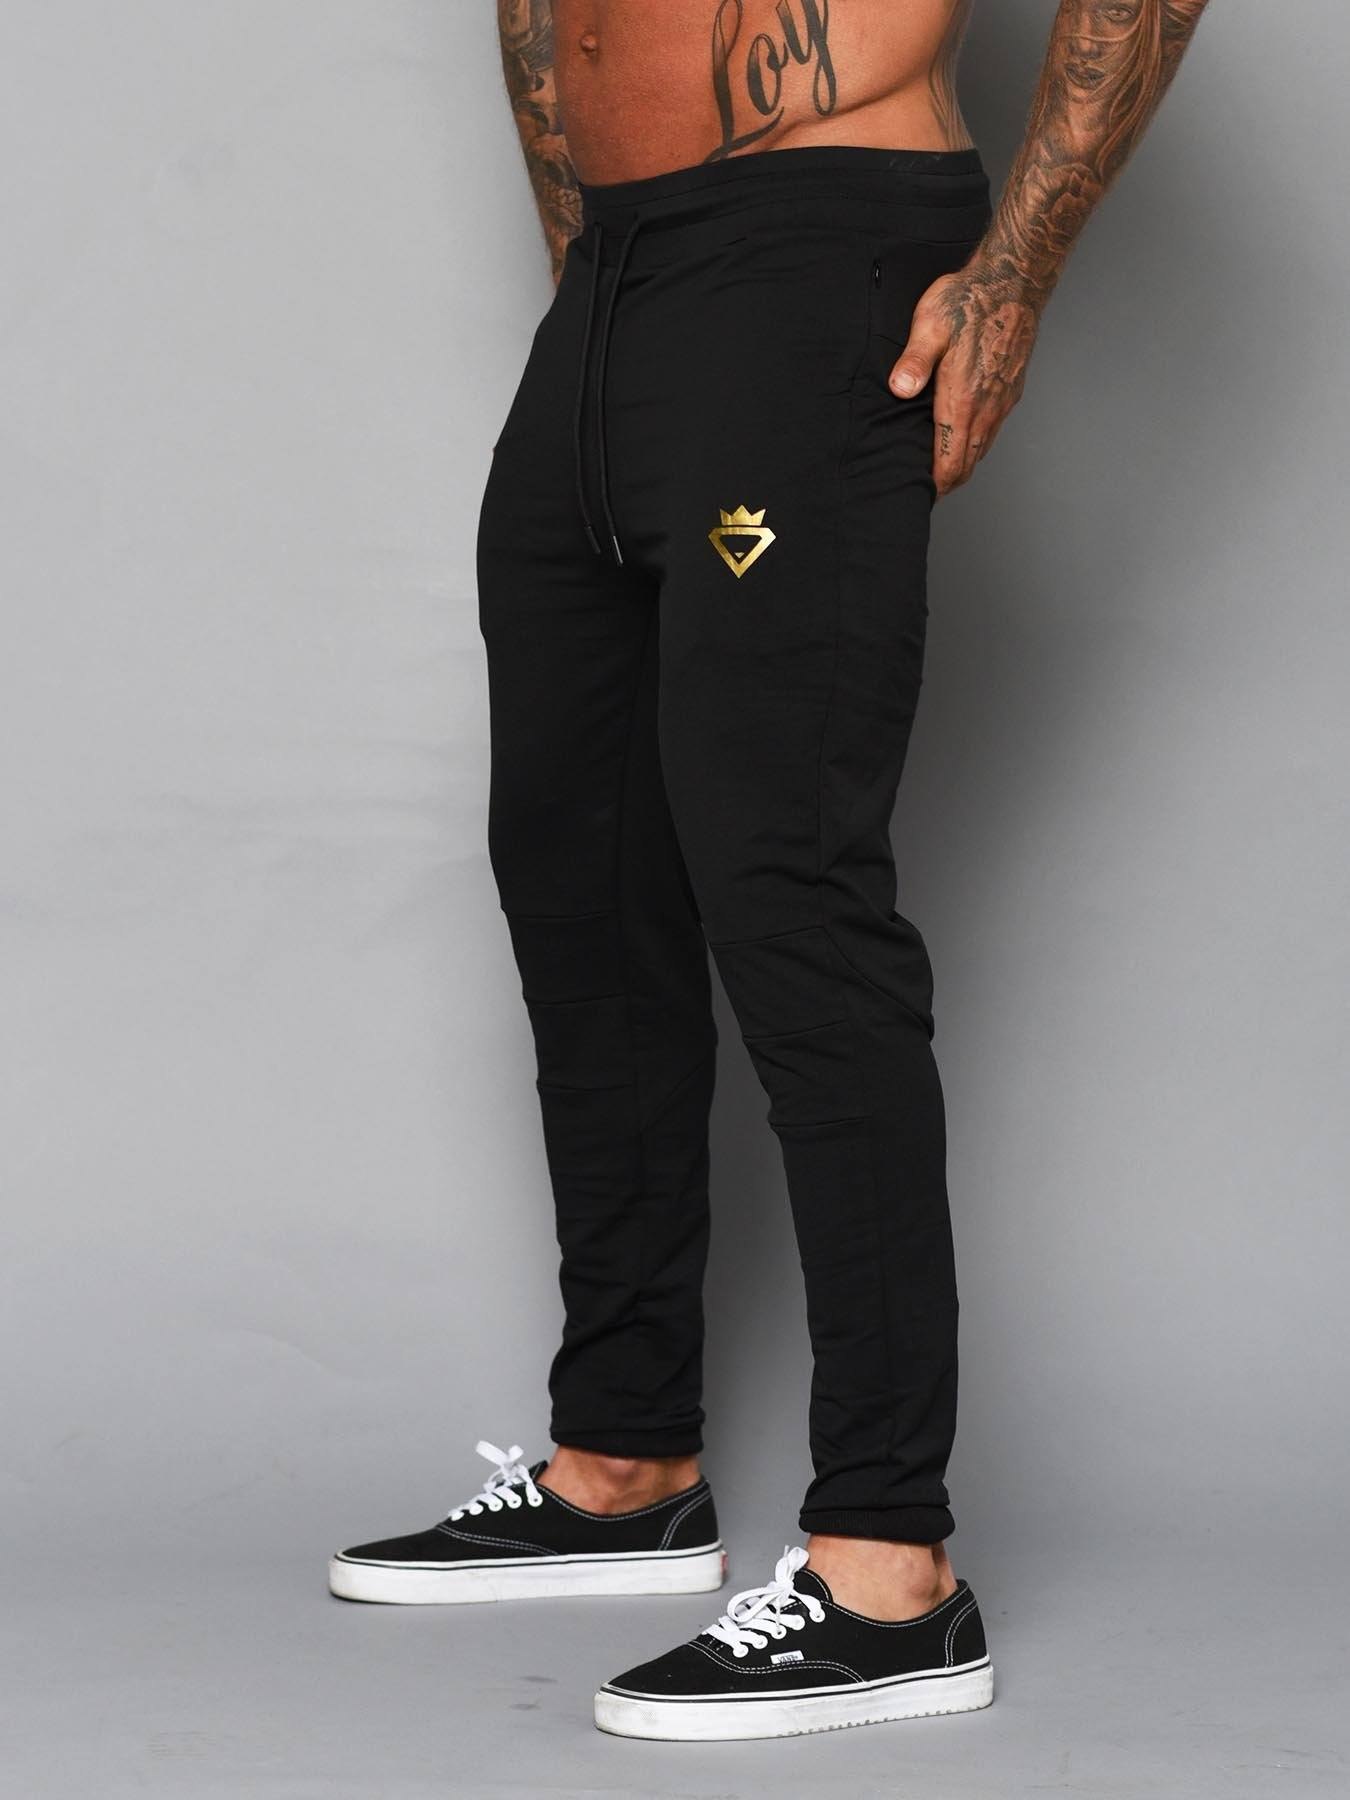 Beast Aesthetic Tracksuit Pants - Black